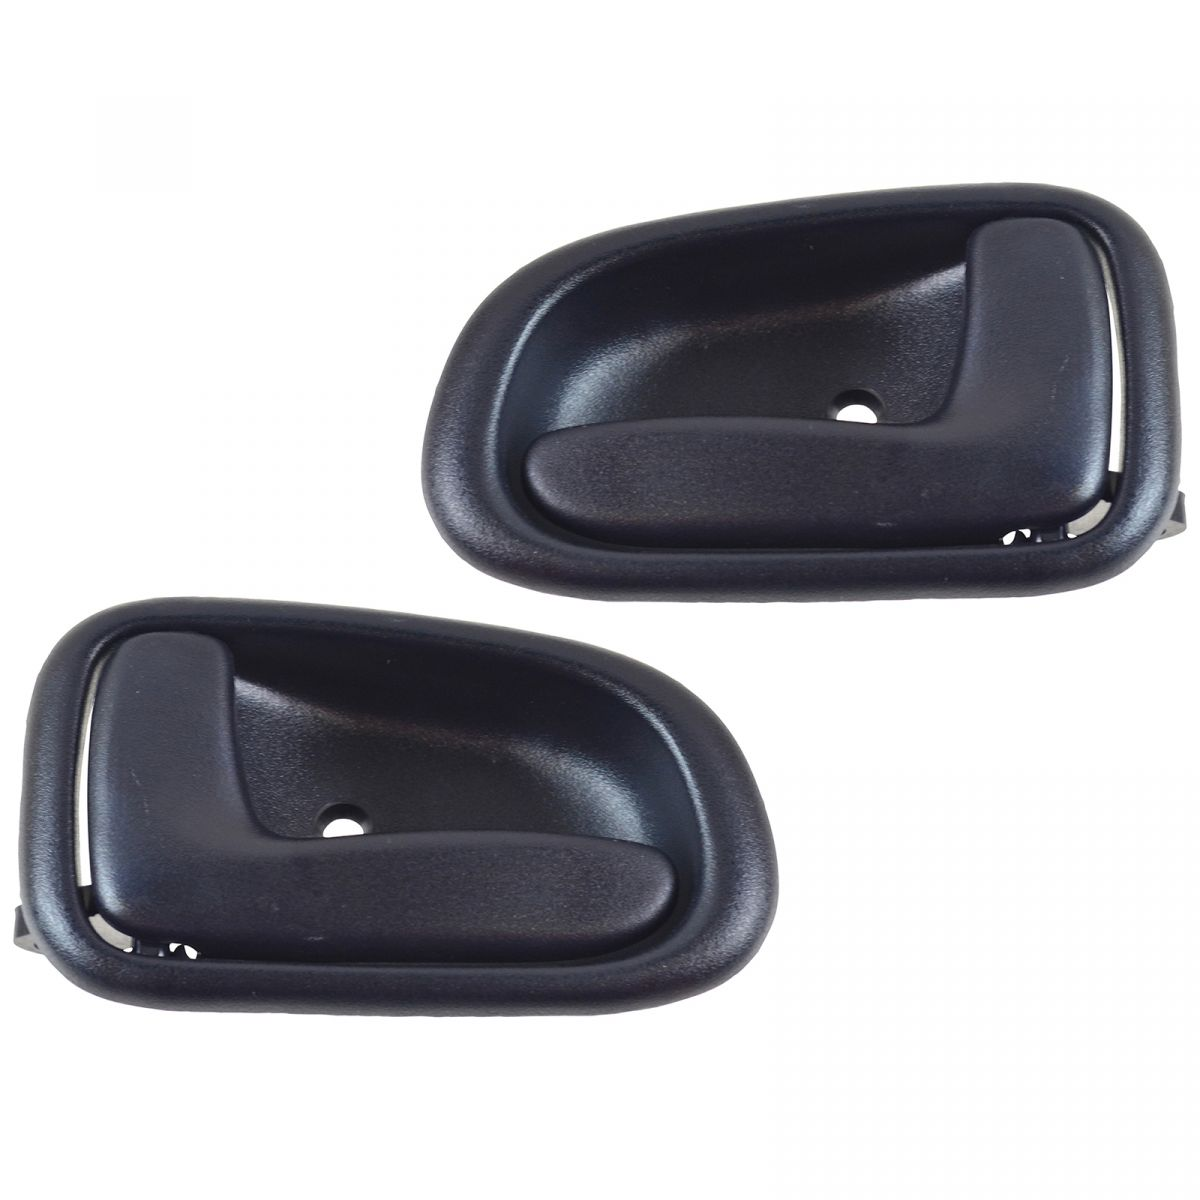 RIGHT PASSENGER SIDE DOOR HANDLE FITS FORD RANGER 1993 1994 1995 1996 1997 1998